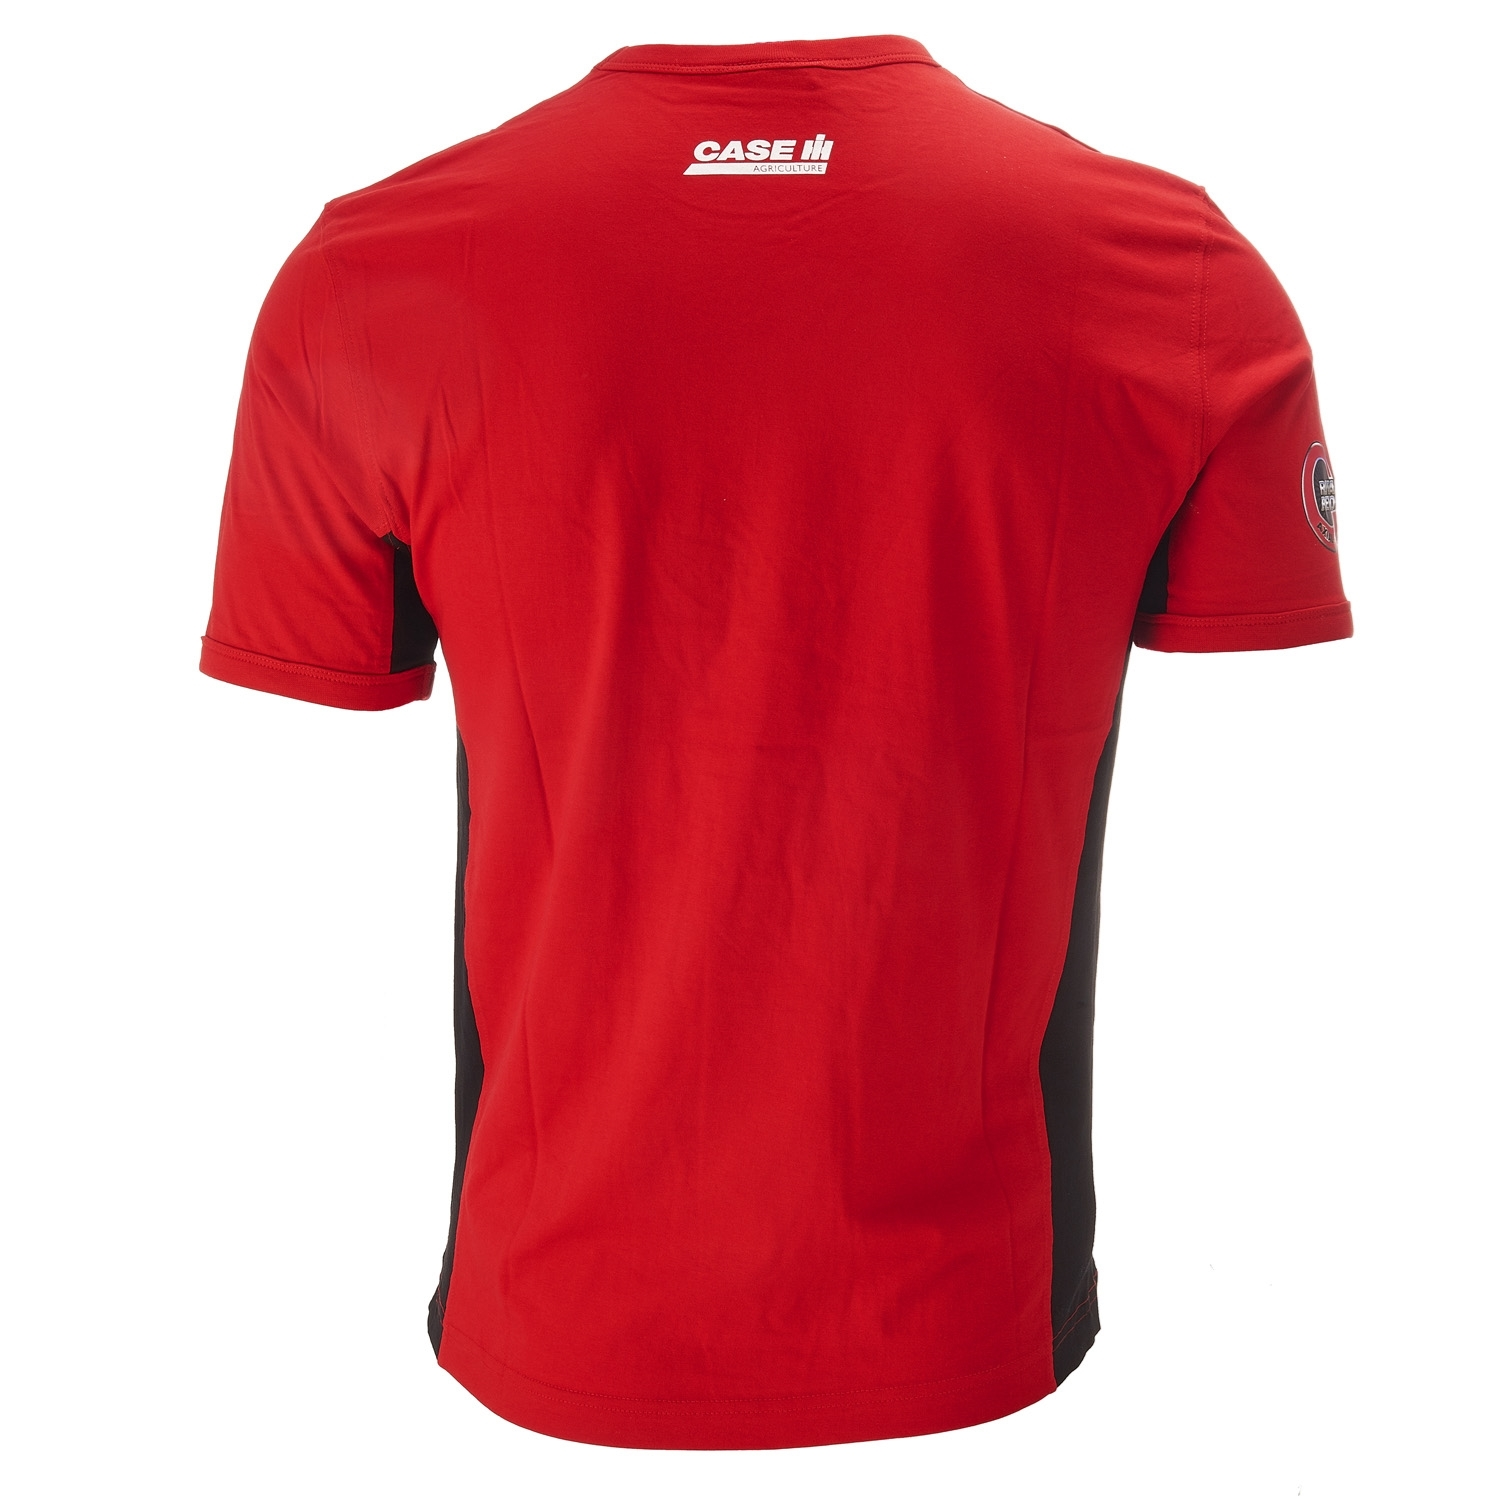 Case ih axial flow t shirt